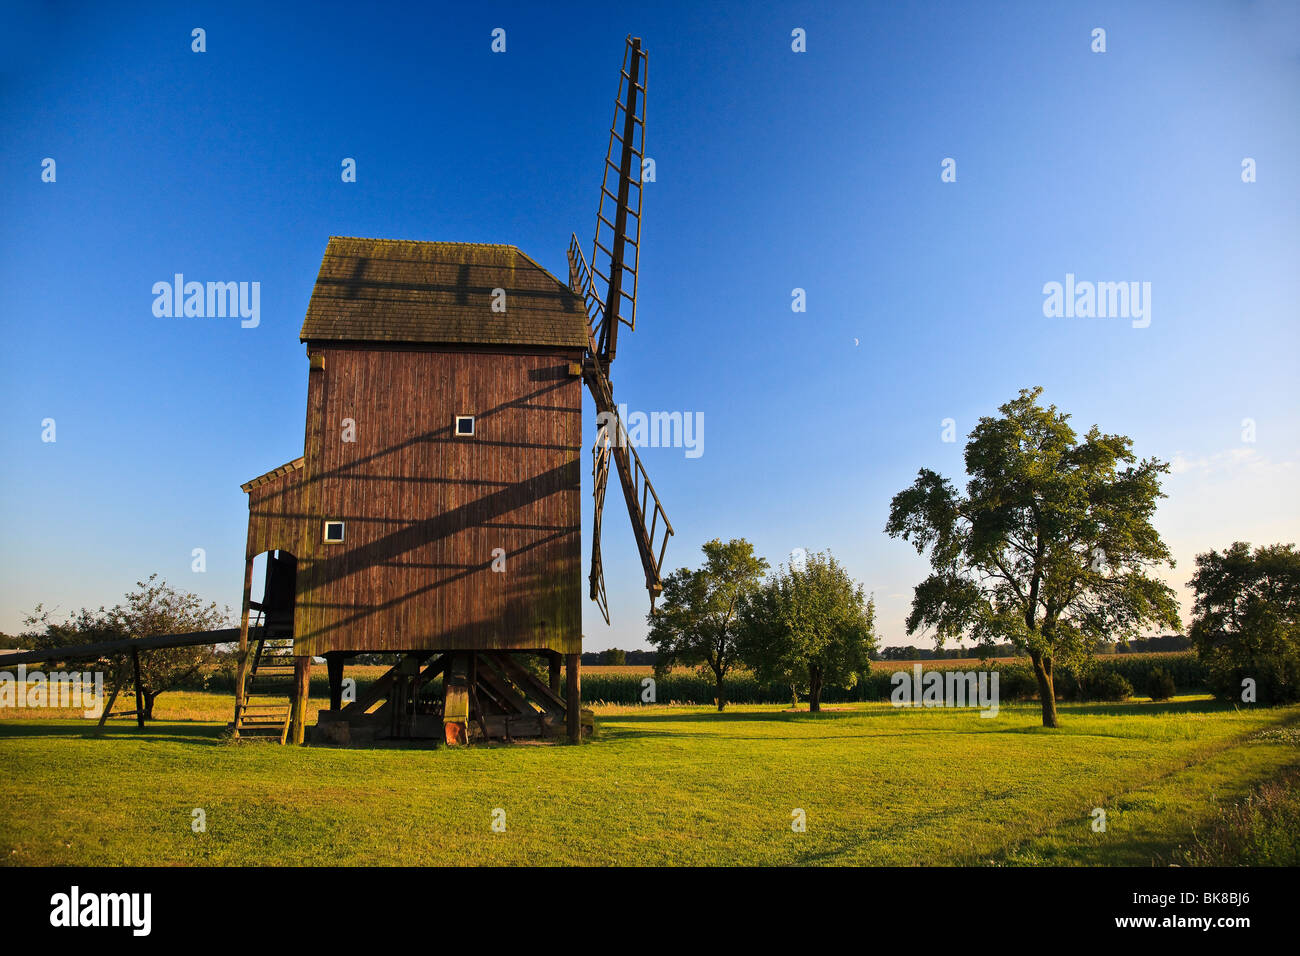 Windmill in the evening sun in Altbelgern on the Elbe river, Brandenburg, Germany, Europe - Stock Image